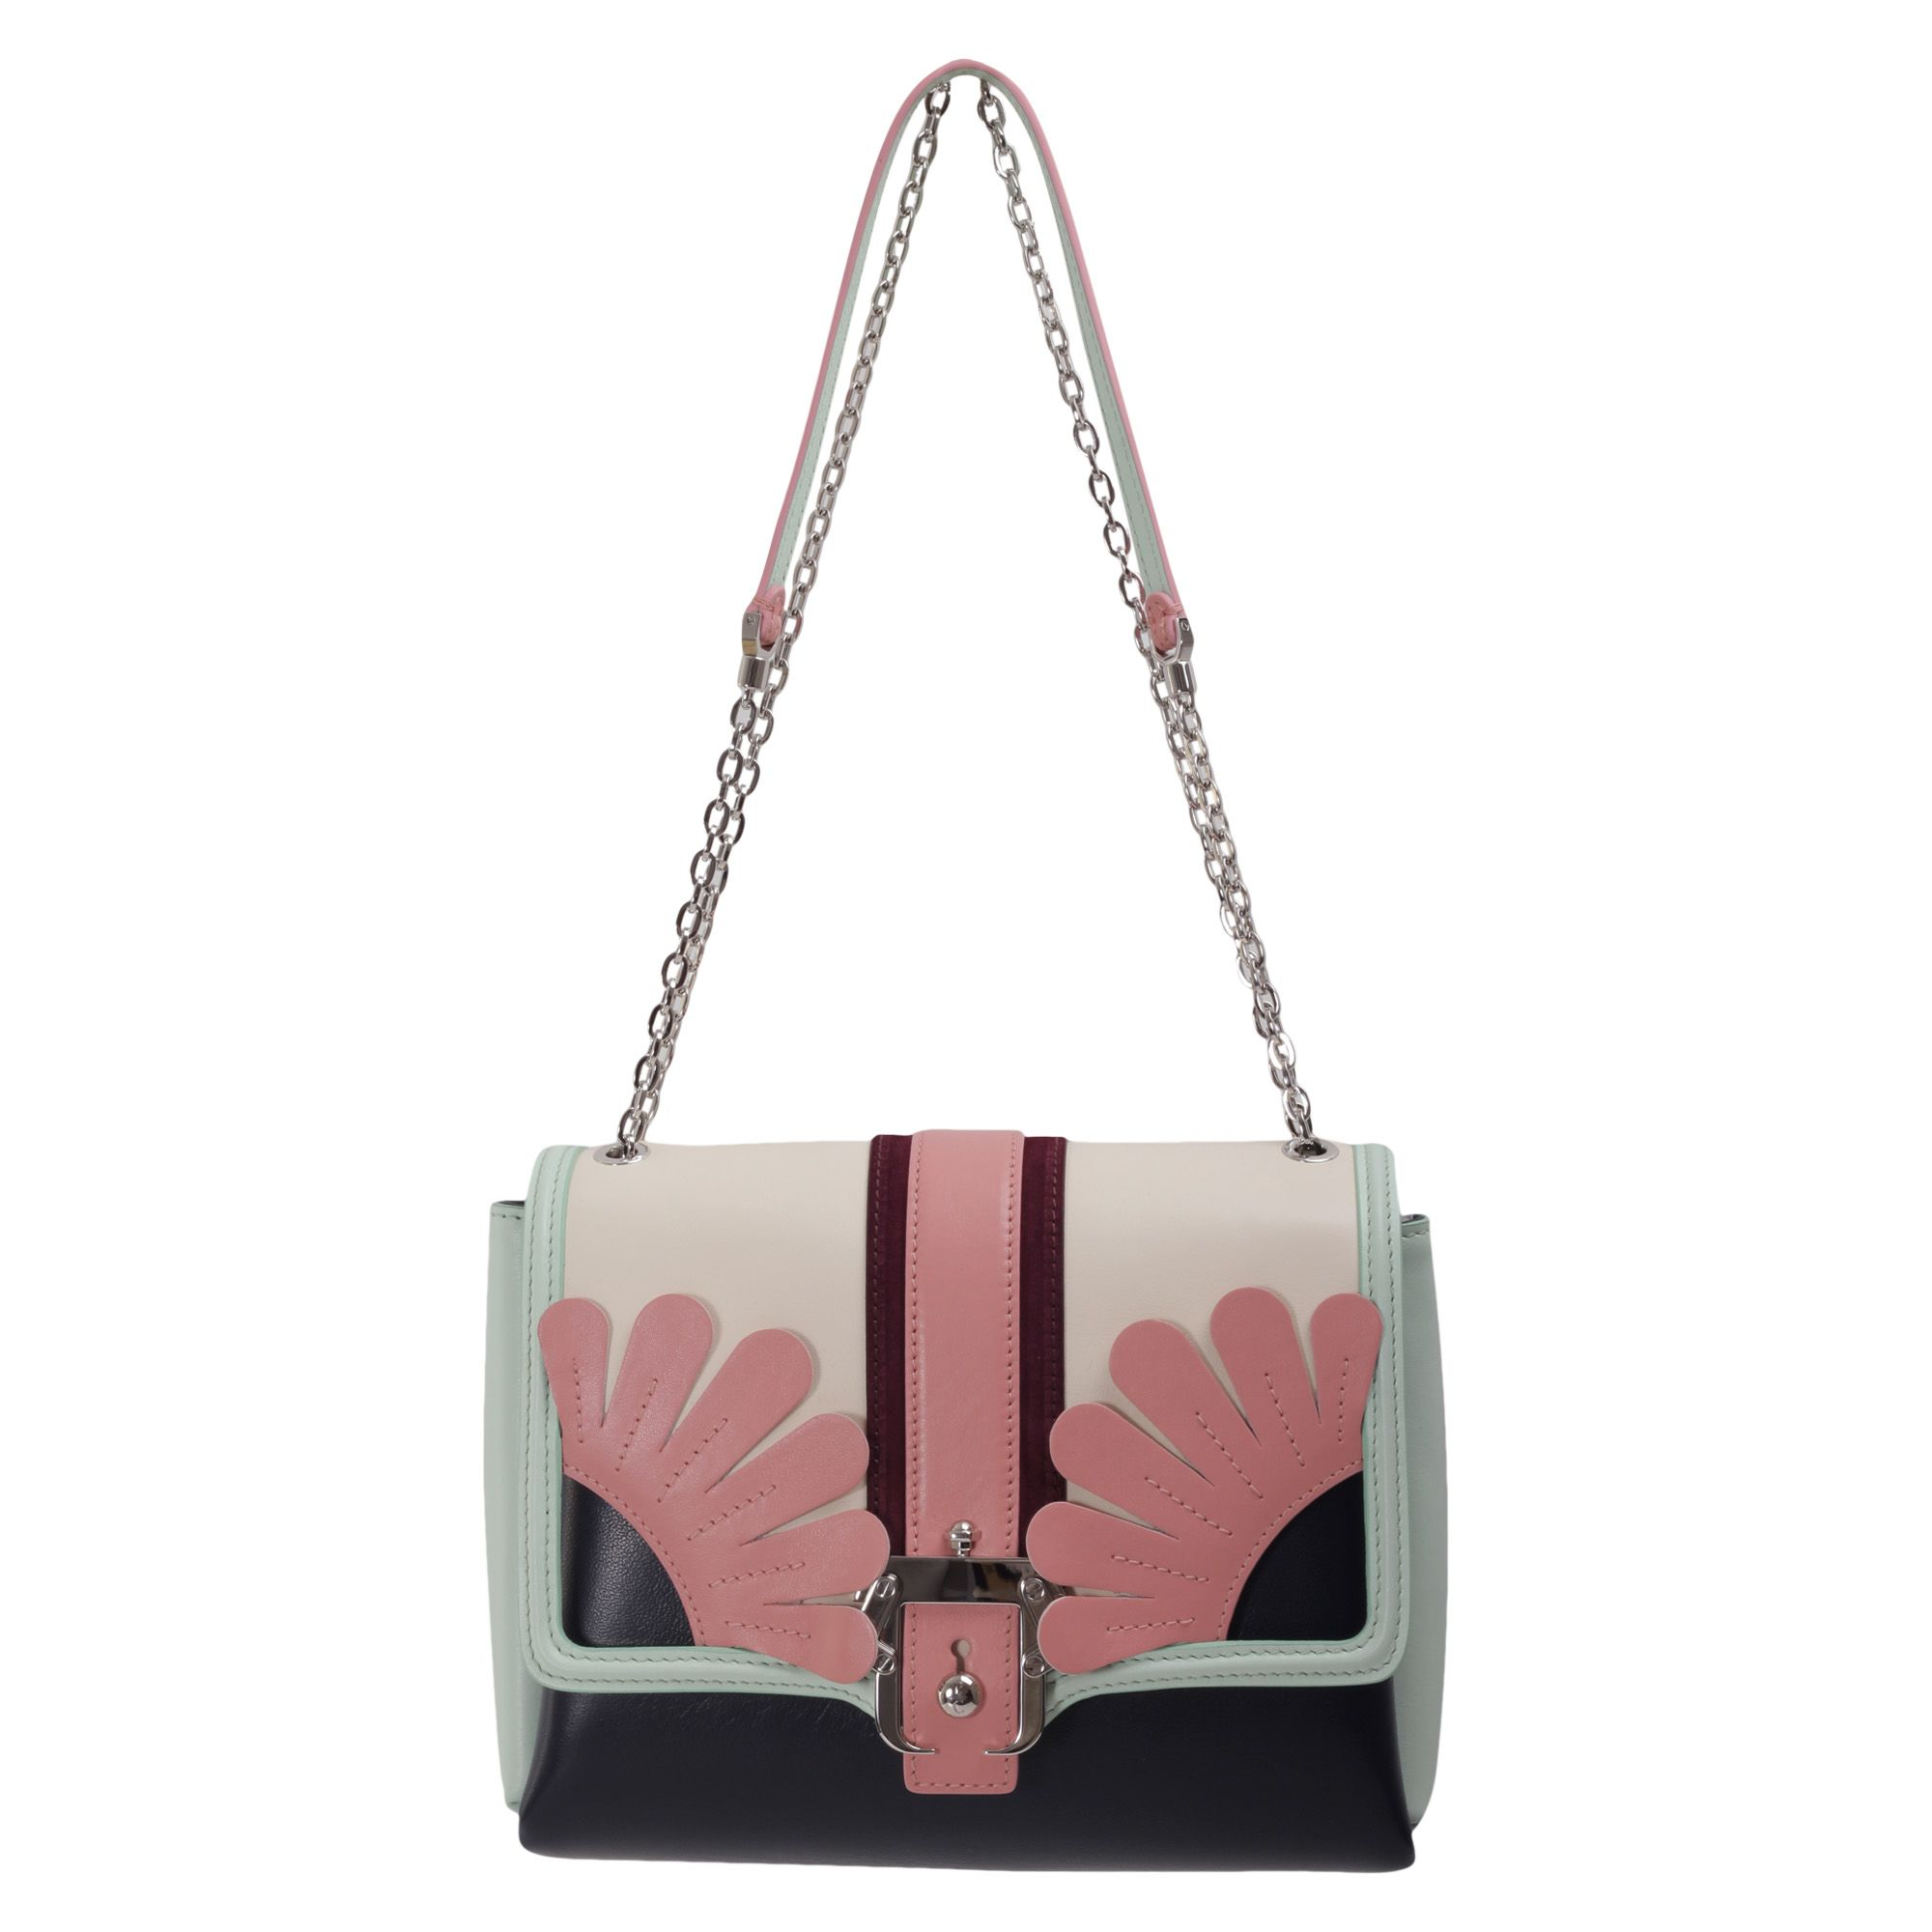 Paula Cademartori ALICE LEATHER BAG